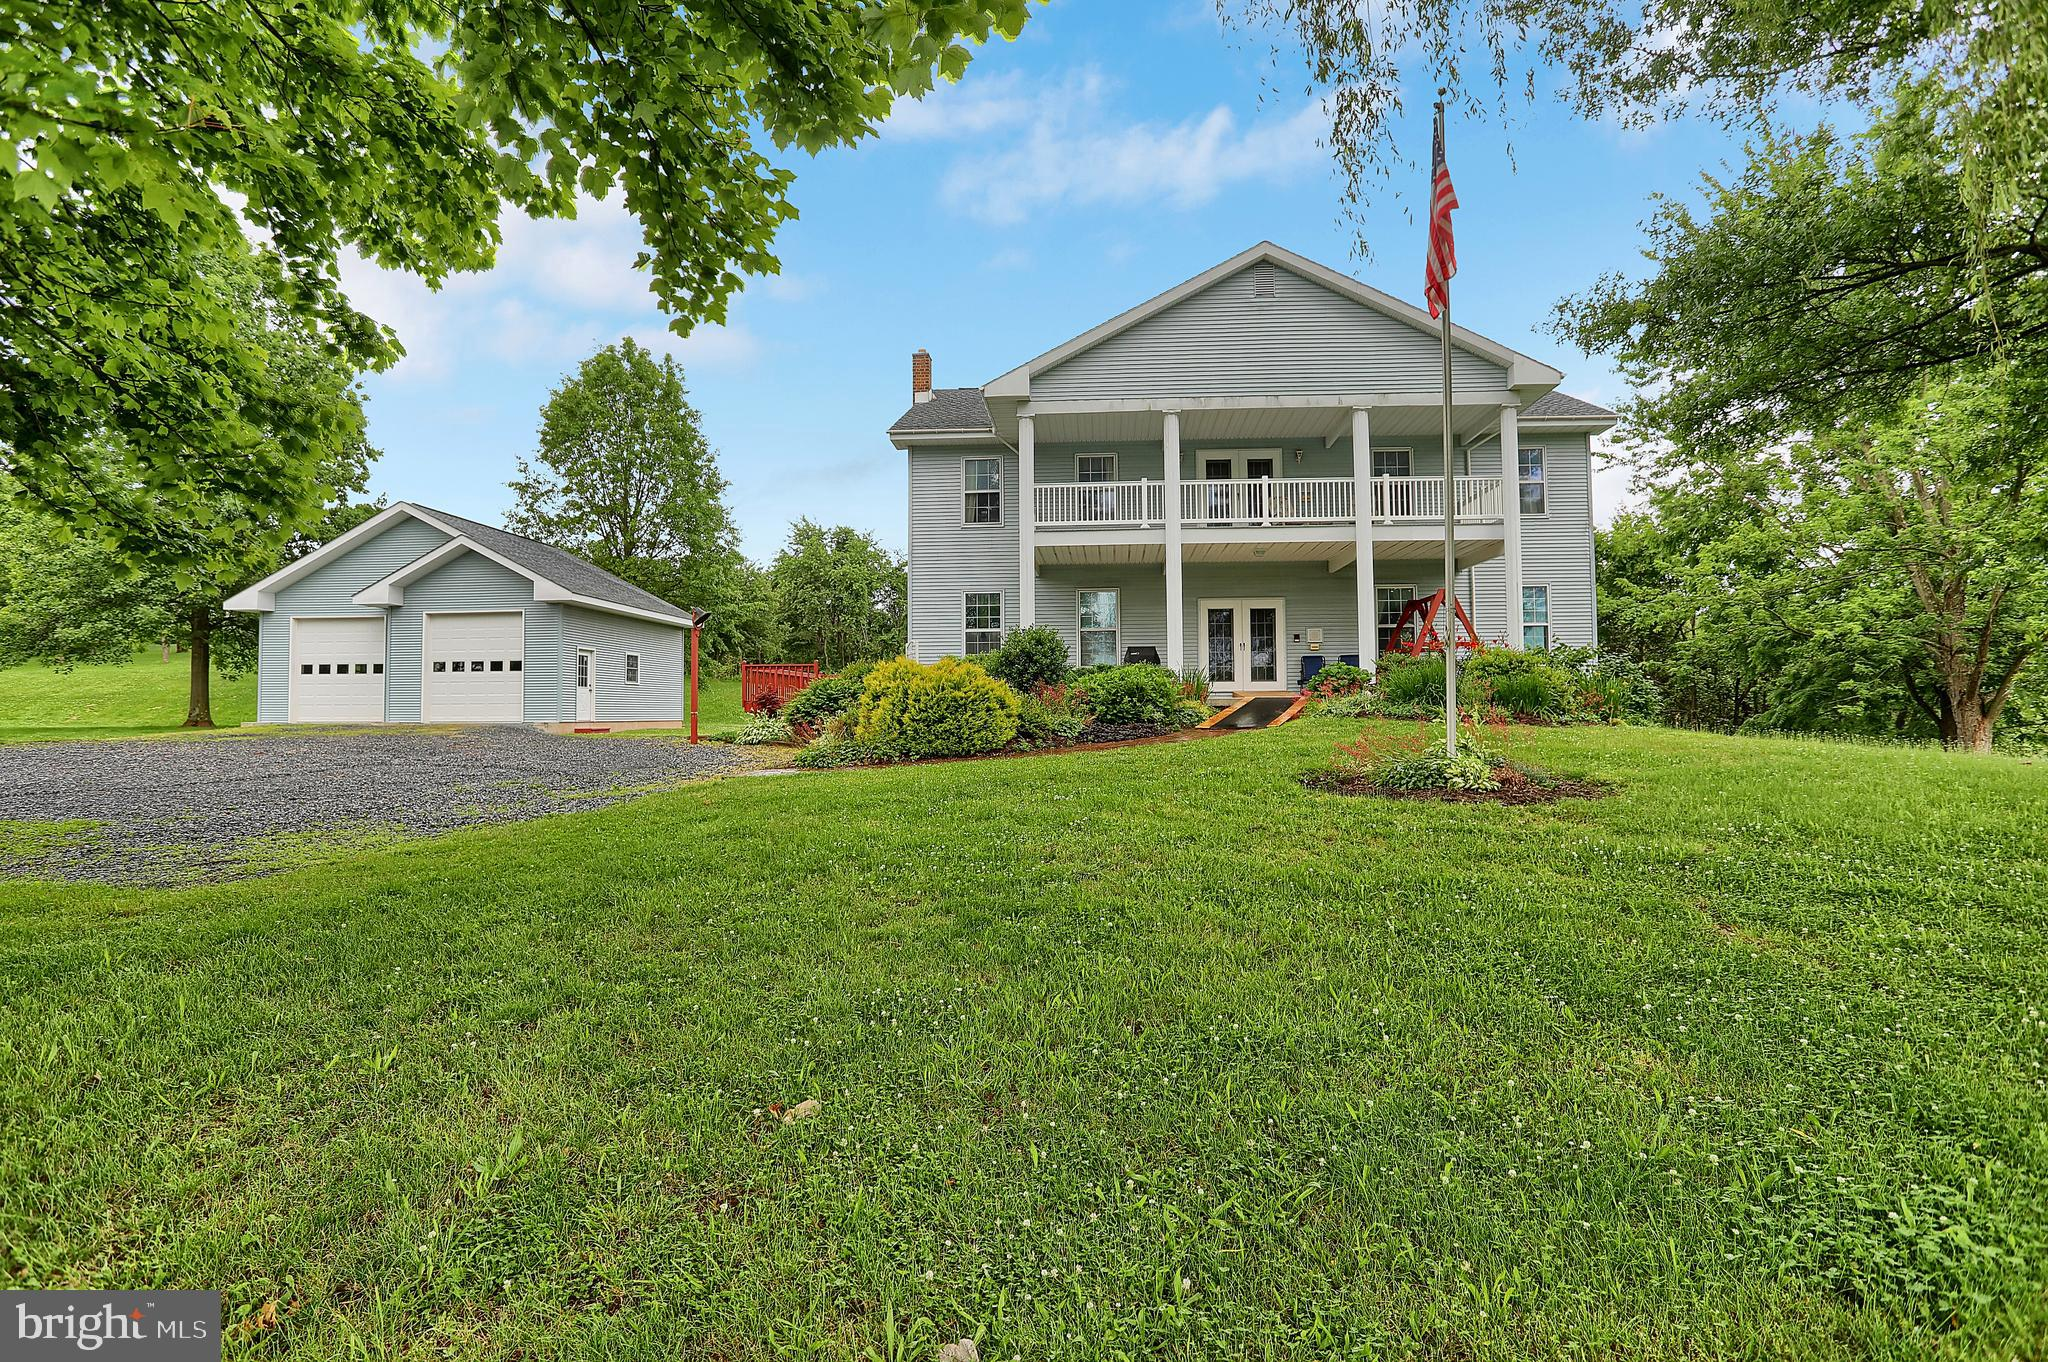 113 OLD STATE ROAD, SHERMANS DALE, PA 17090